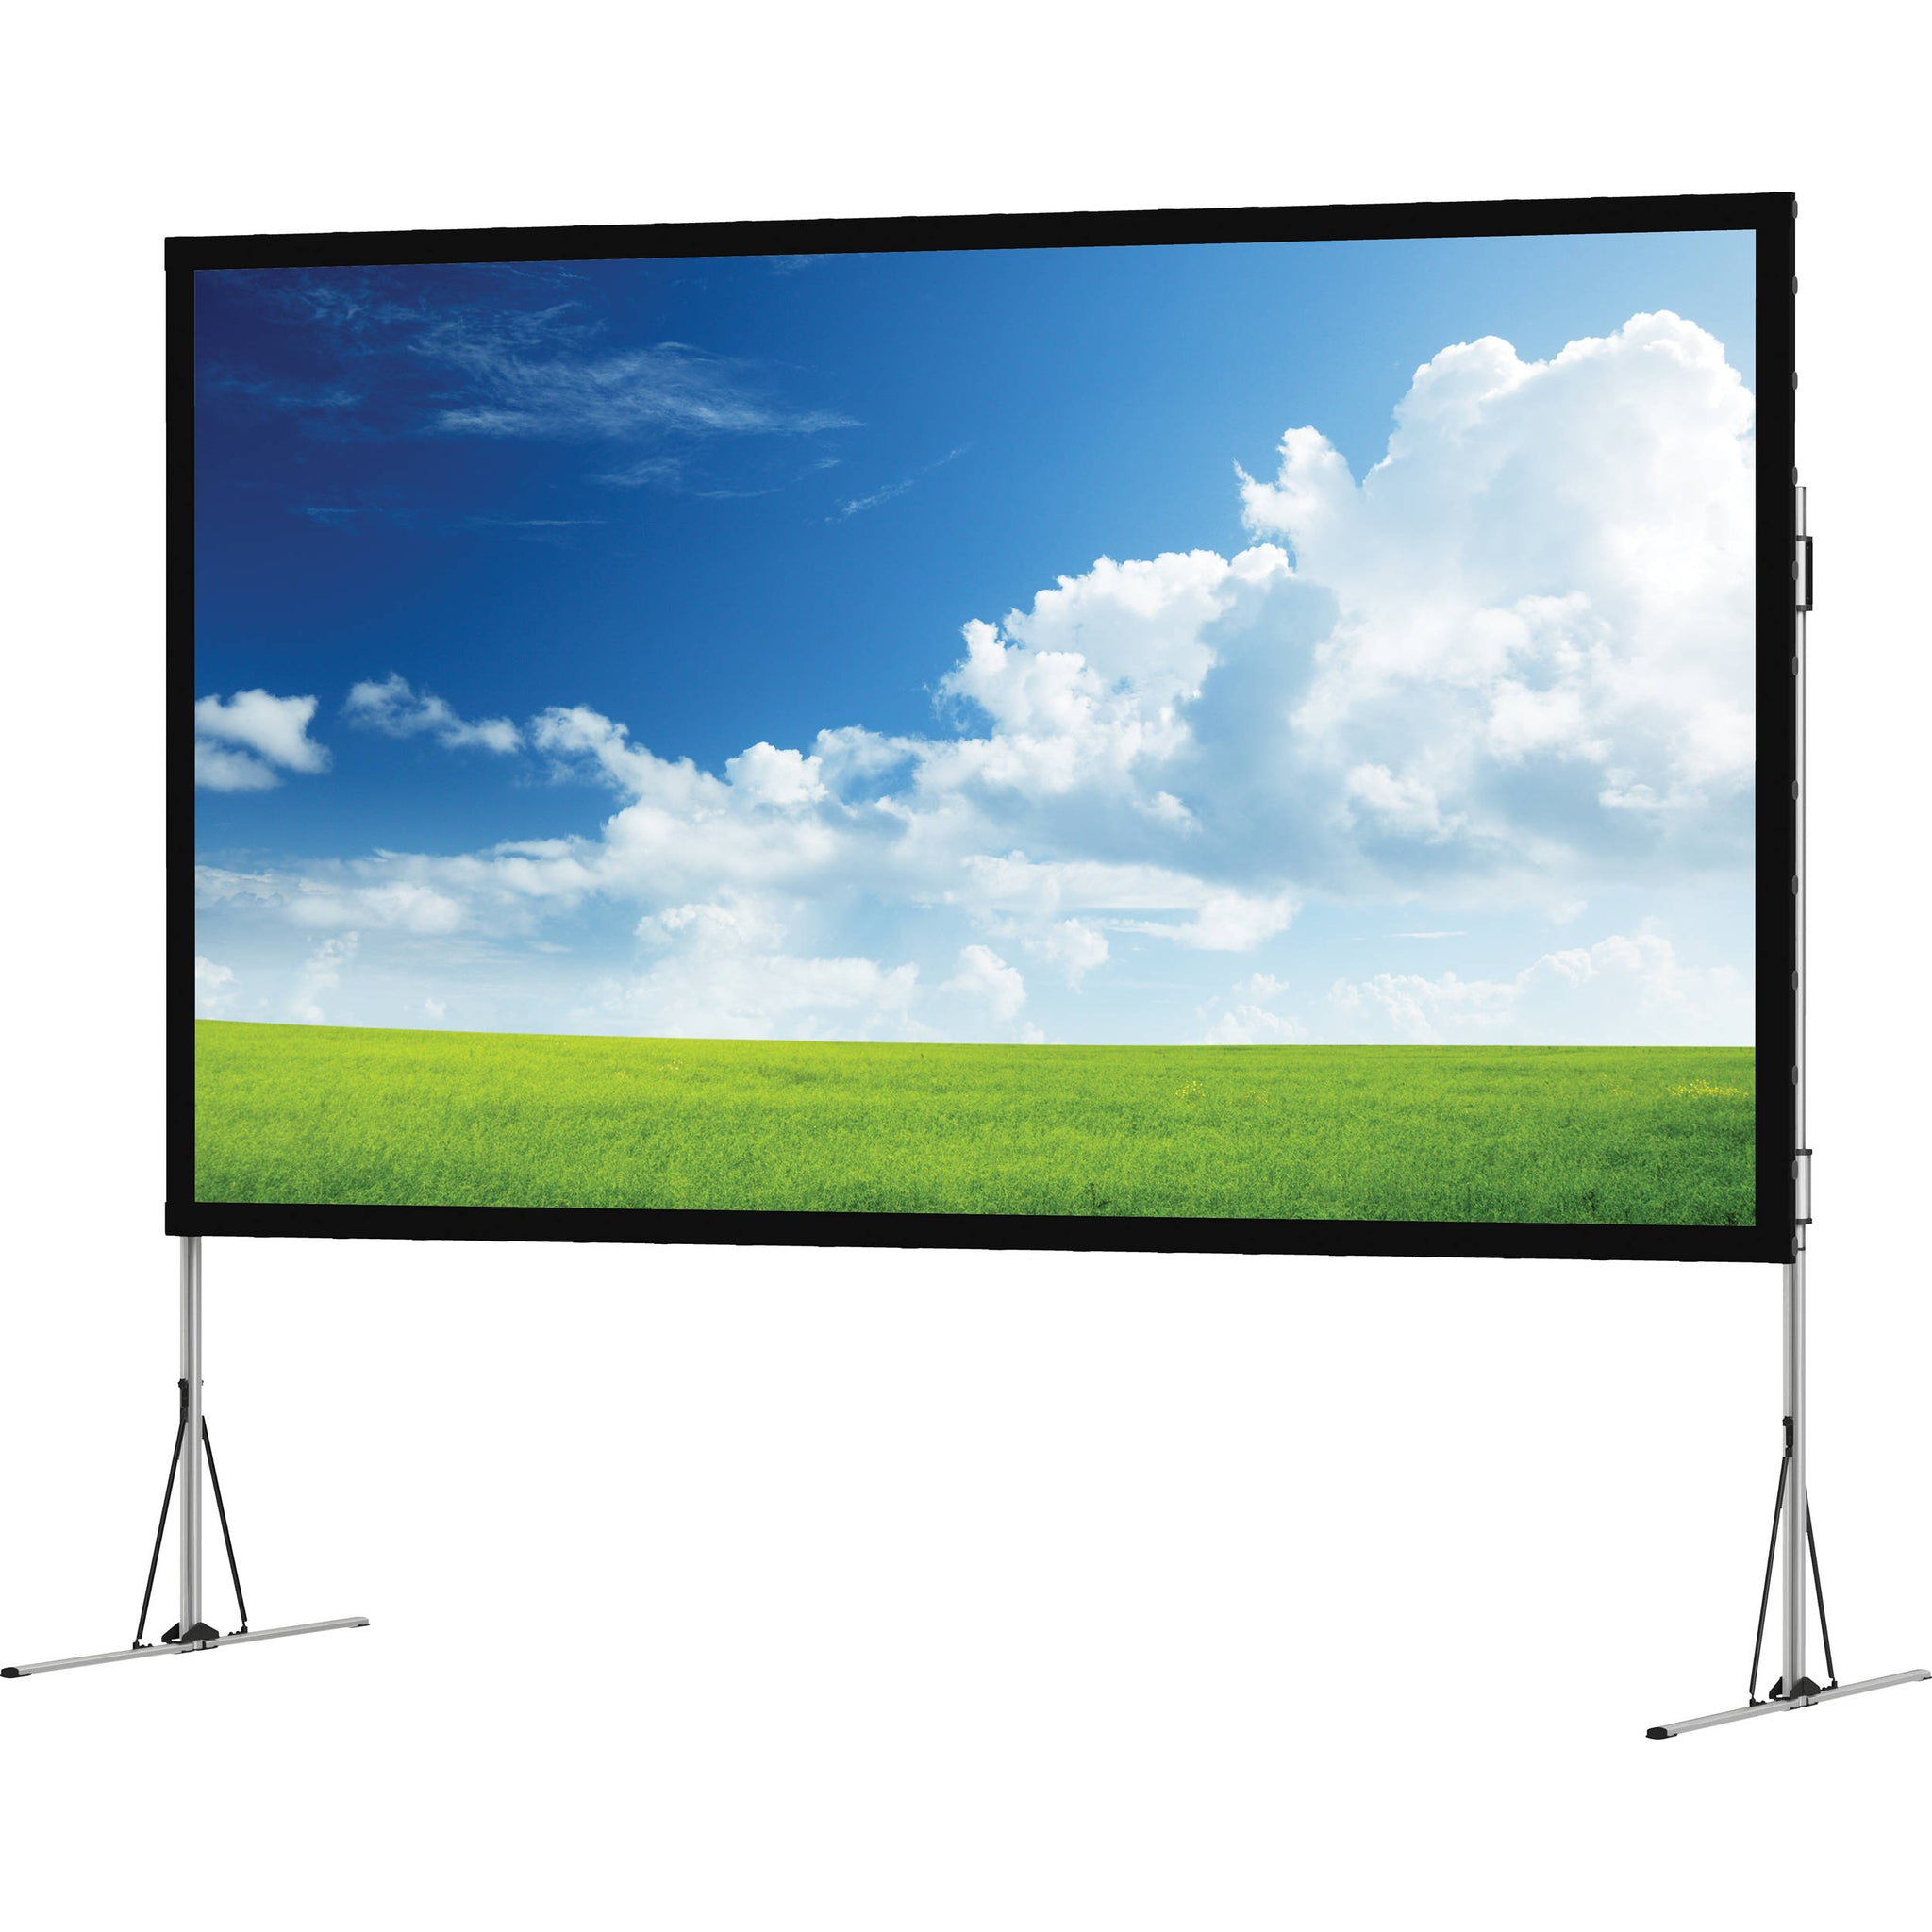 "Avico JK 250"" 553.5 x 311.5 Fast Fold Front and Rear Projection Screen, 16:9 JK-FF9 250FPRP"